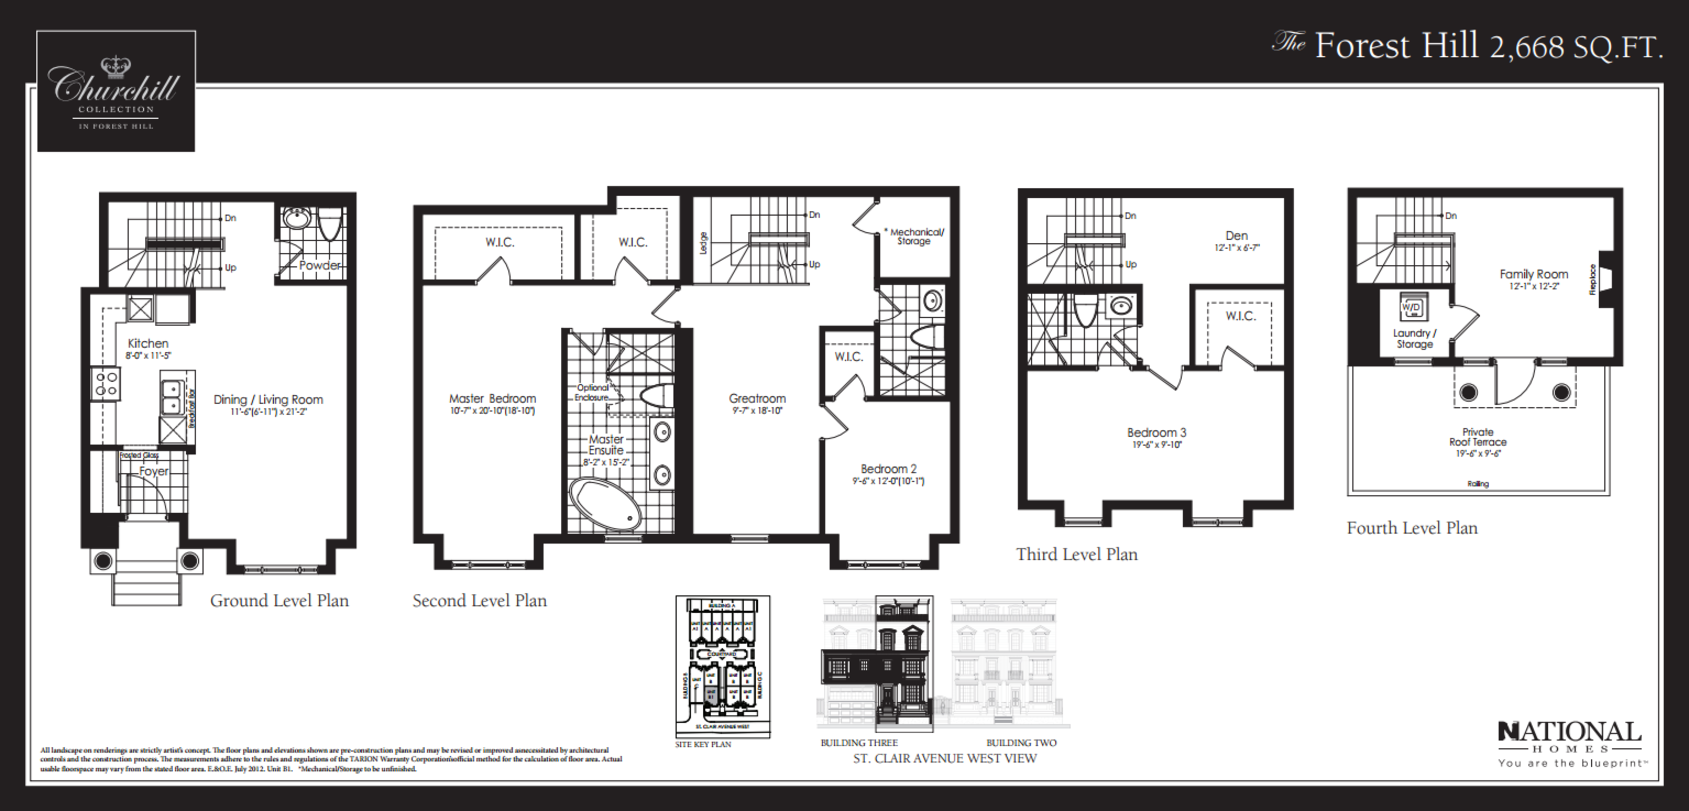 CHURCHILL TOWNHOUSES FOR SALE - THREE BED 2668 SQ FT - CONTACT YOSSI KAPLAN